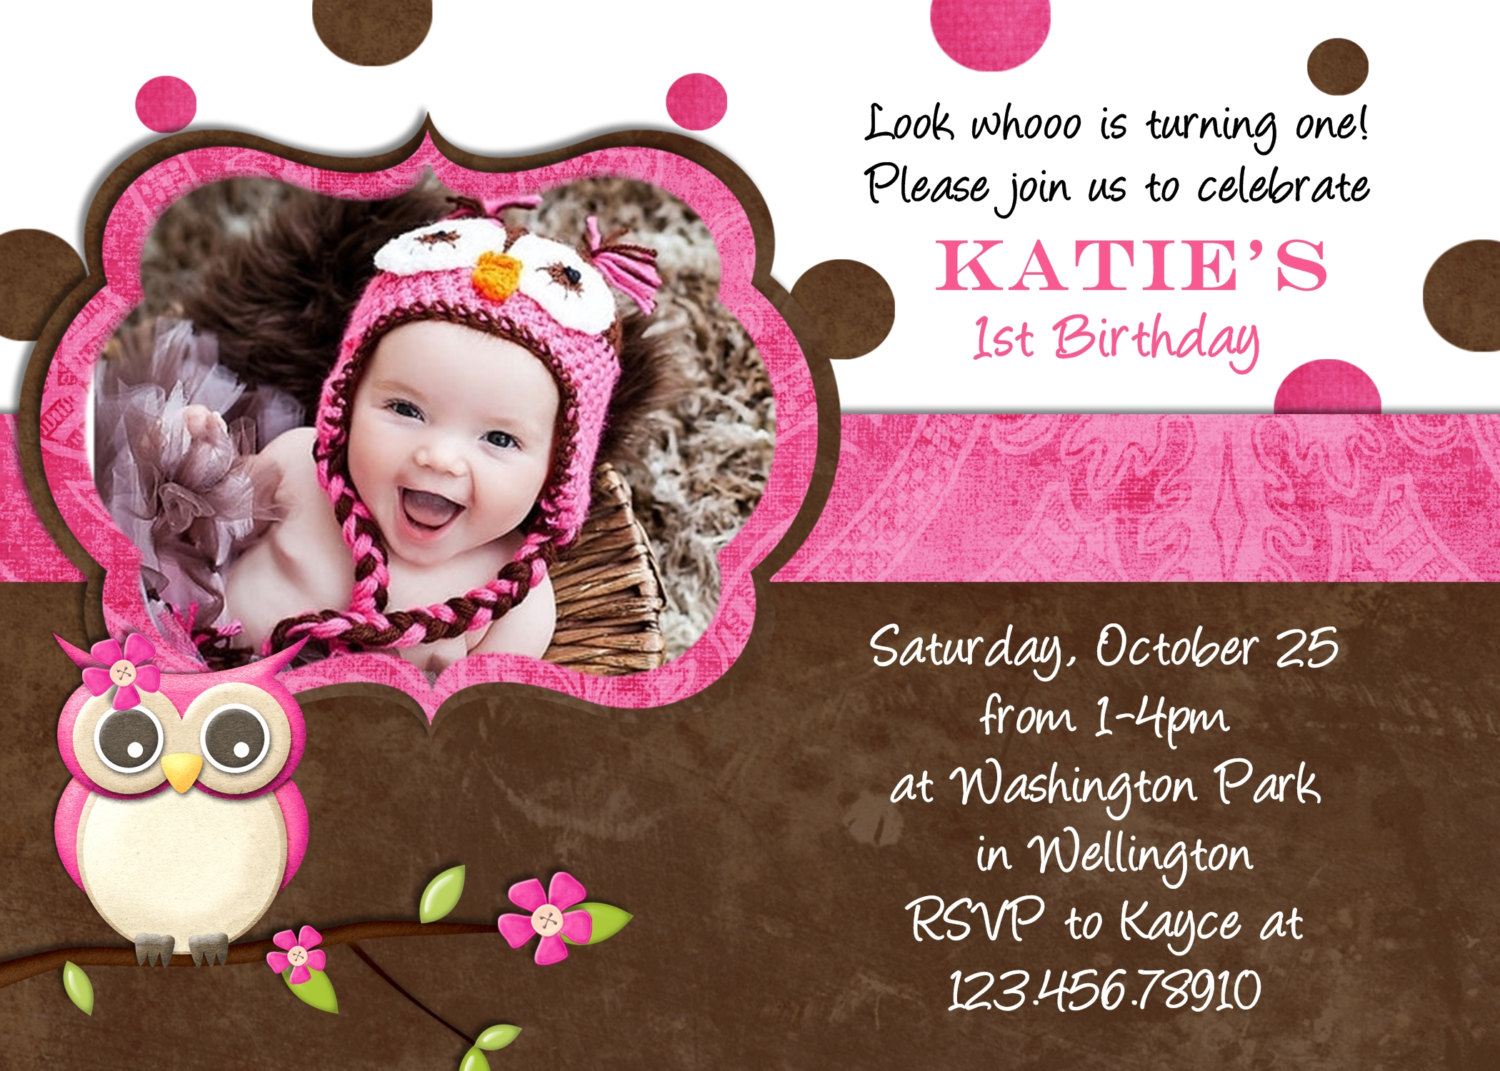 baby birthday invitation card design ; mesmerizing-ideas-birthday-invitation-card-design-cute-layout-sample-designing-template-modern-ideas-brown-pink-white-owl